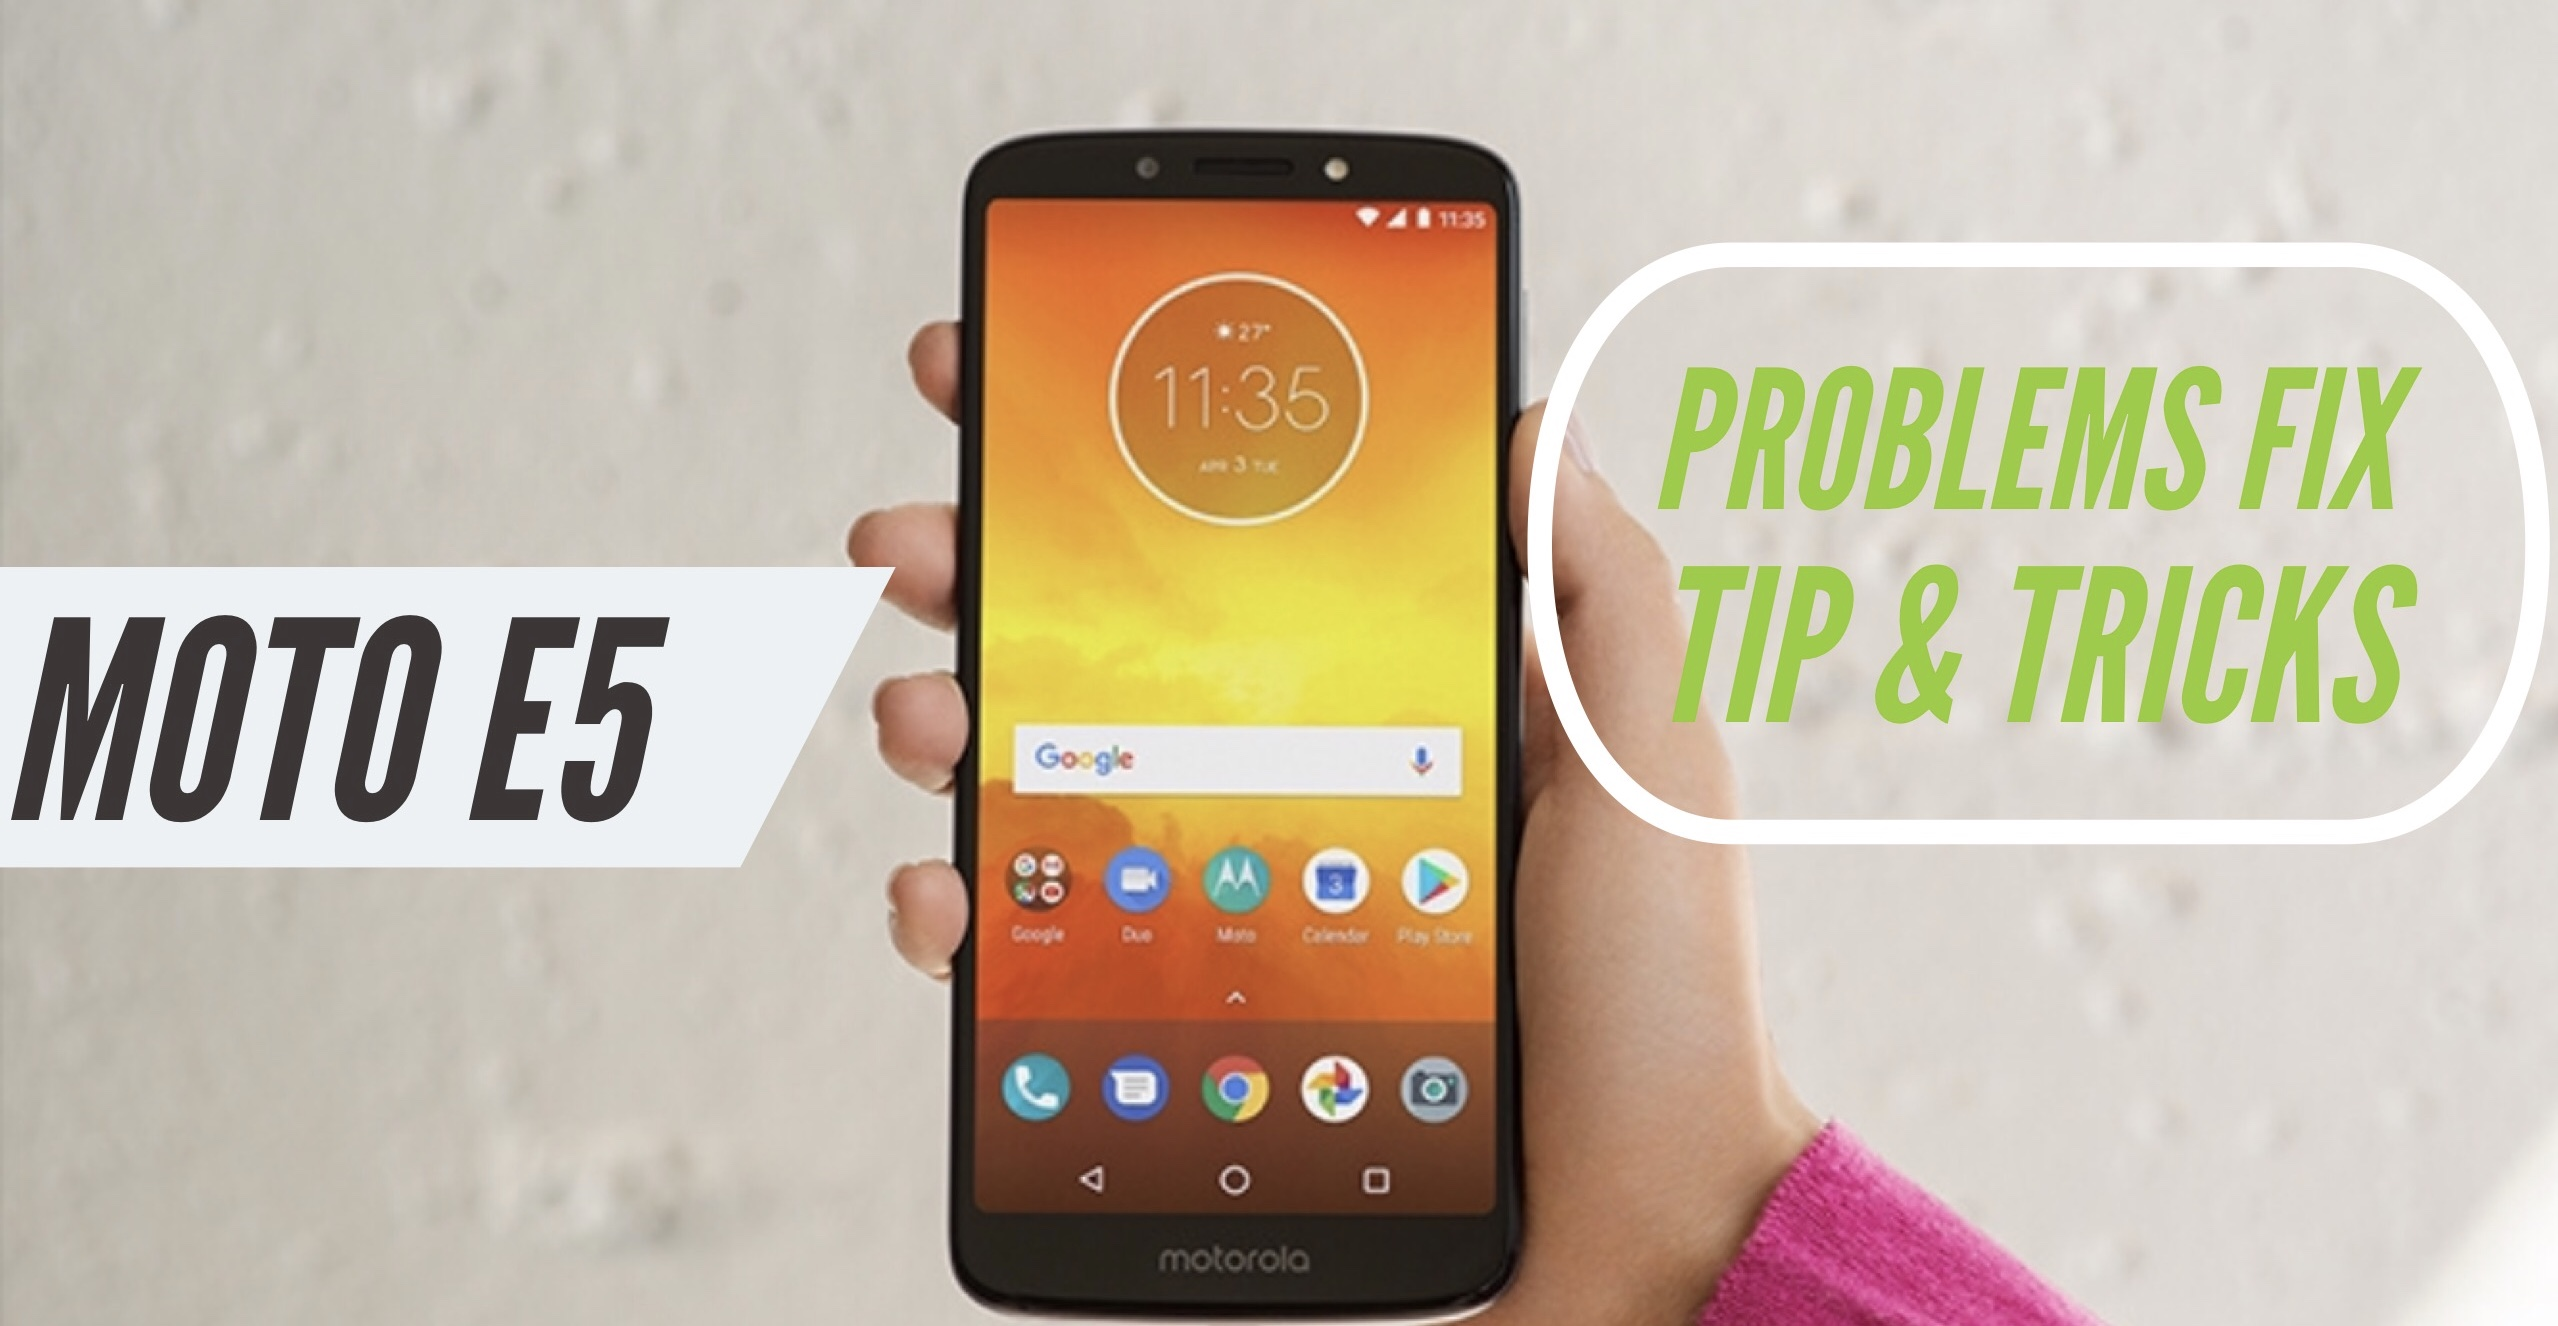 Moto E5 Most Common Problems & Issues + Solution FIX - TIPS